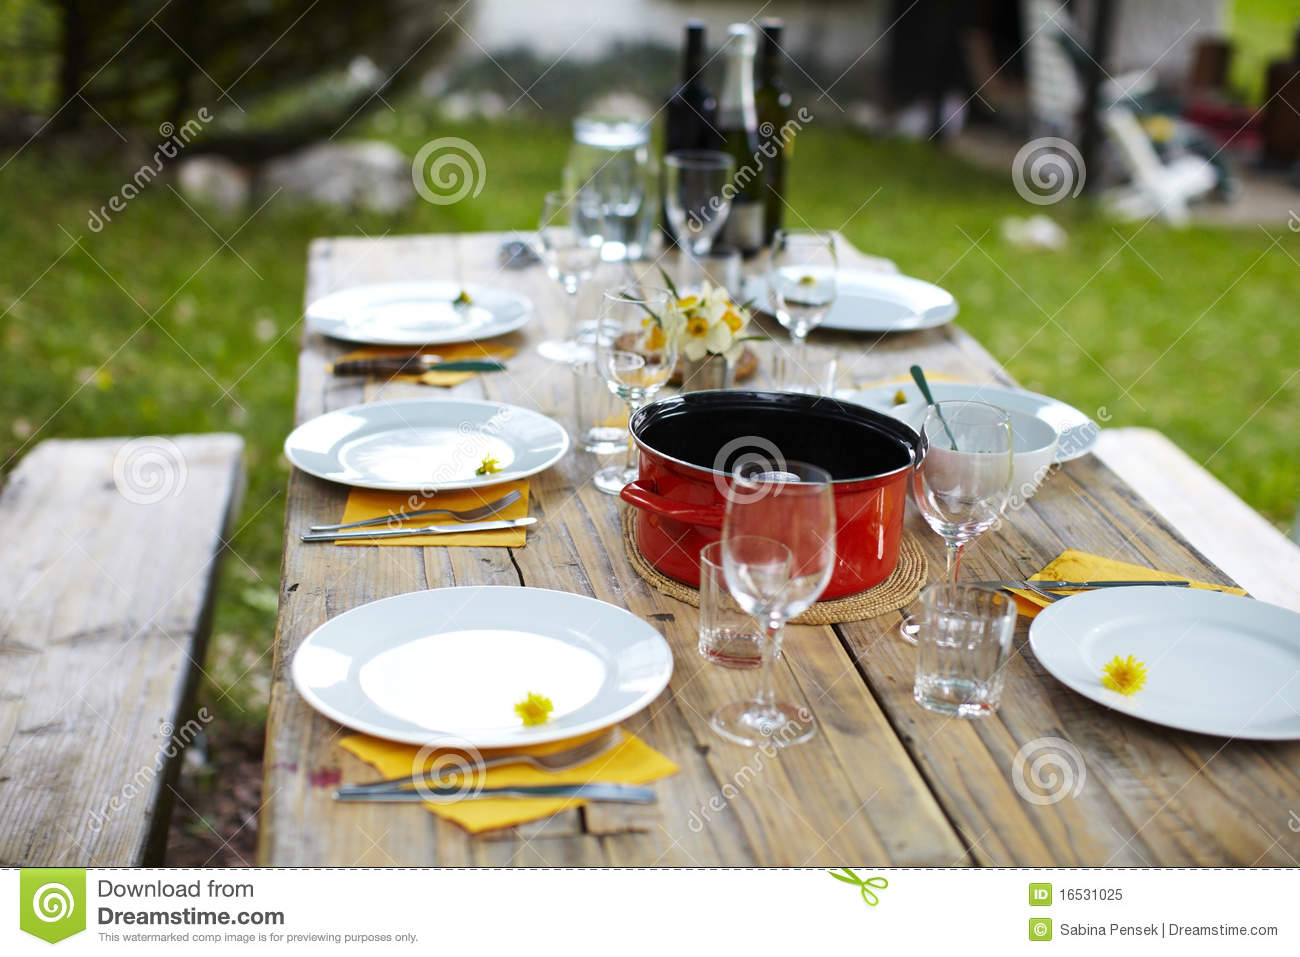 Picnic table set for lunch